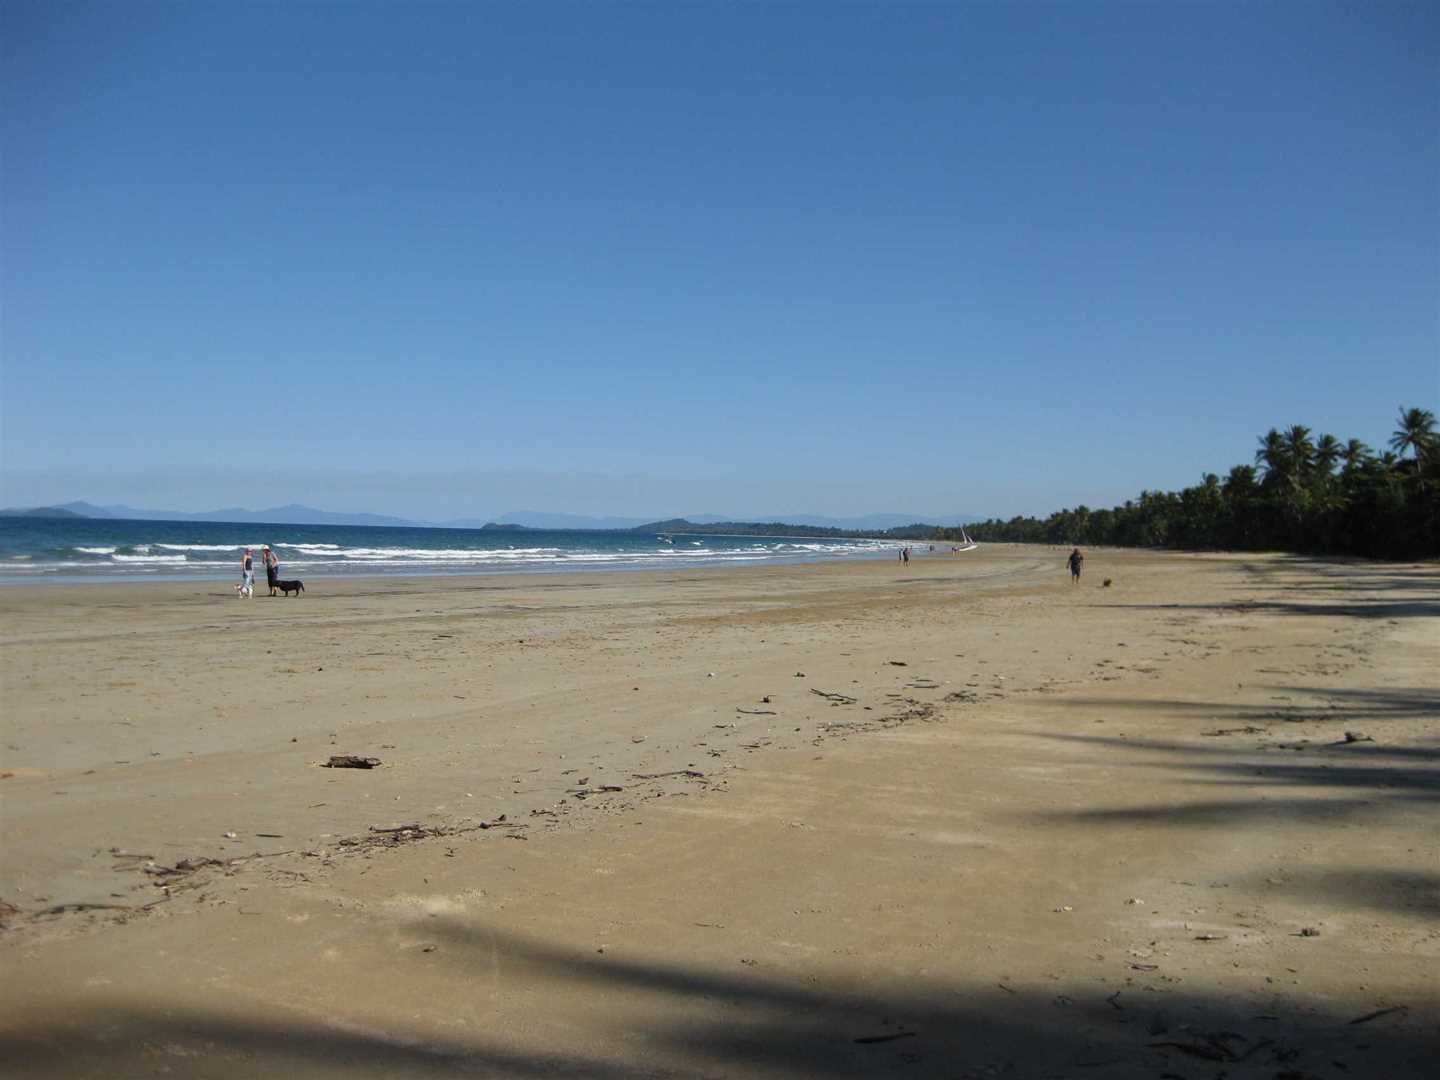 View of part of Mission Beach beach taken approx. 1 km from the property, photo 1